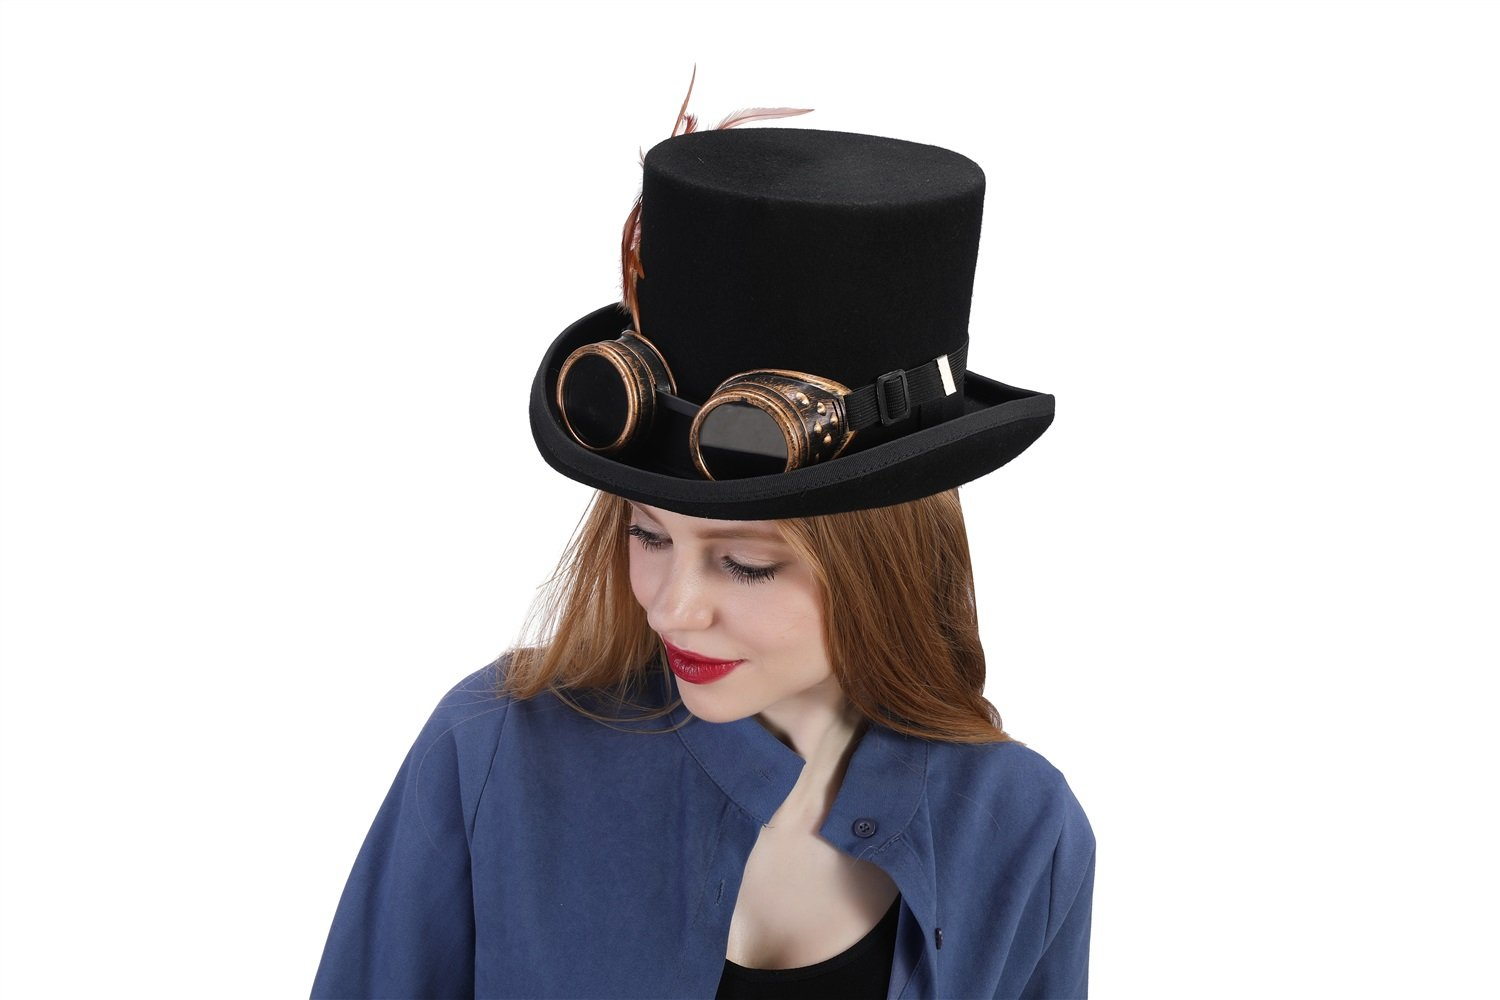 Black YUXUJ Women's Top Hats Steampunk Hat For Women With Feather